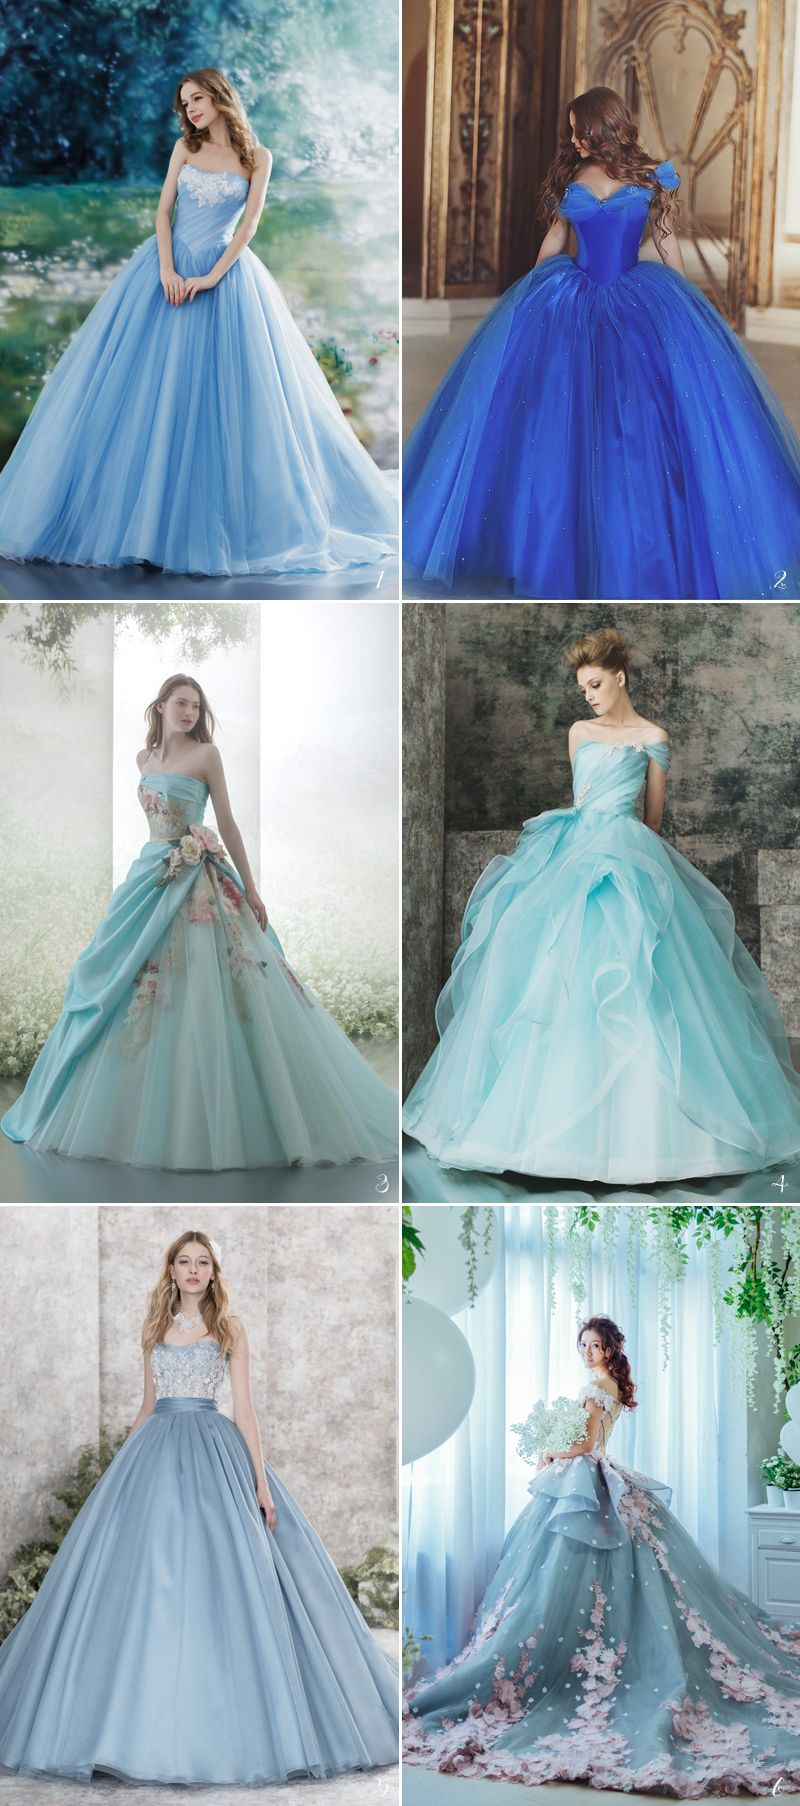 42 Fairy Tale Wedding Dresses For The Disney Princess Bride | Disney ...